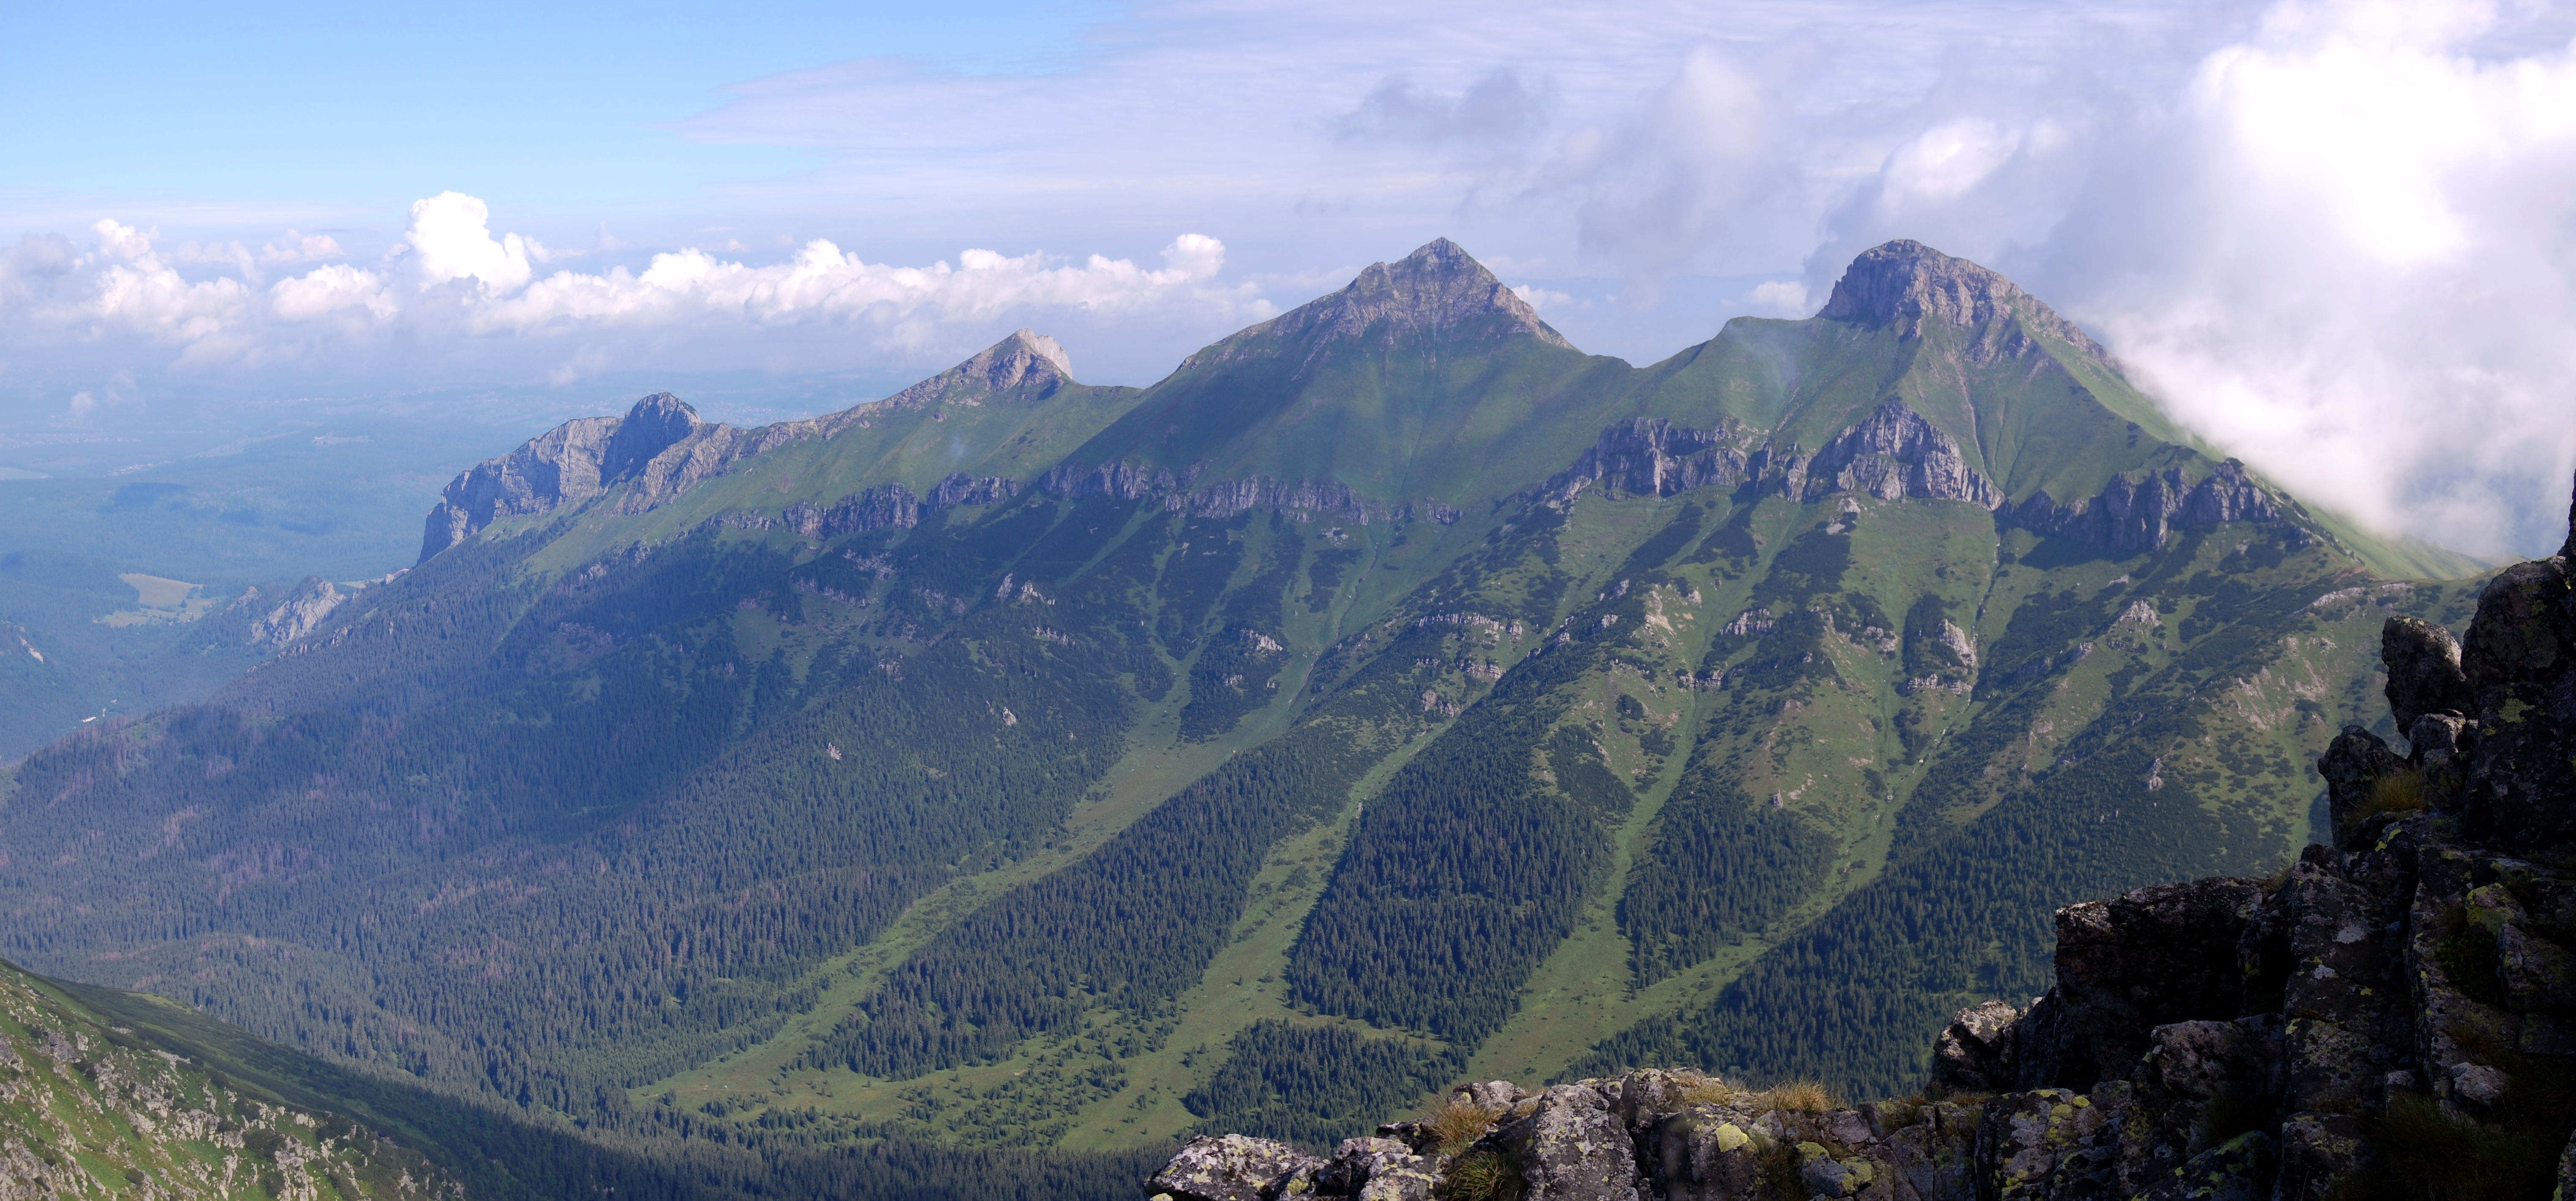 http://upload.wikimedia.org/wikipedia/commons/b/bf/Belianske_Tatry_from_Jah%C5%88aci_%C5%A1t%C3%ADt.jpg